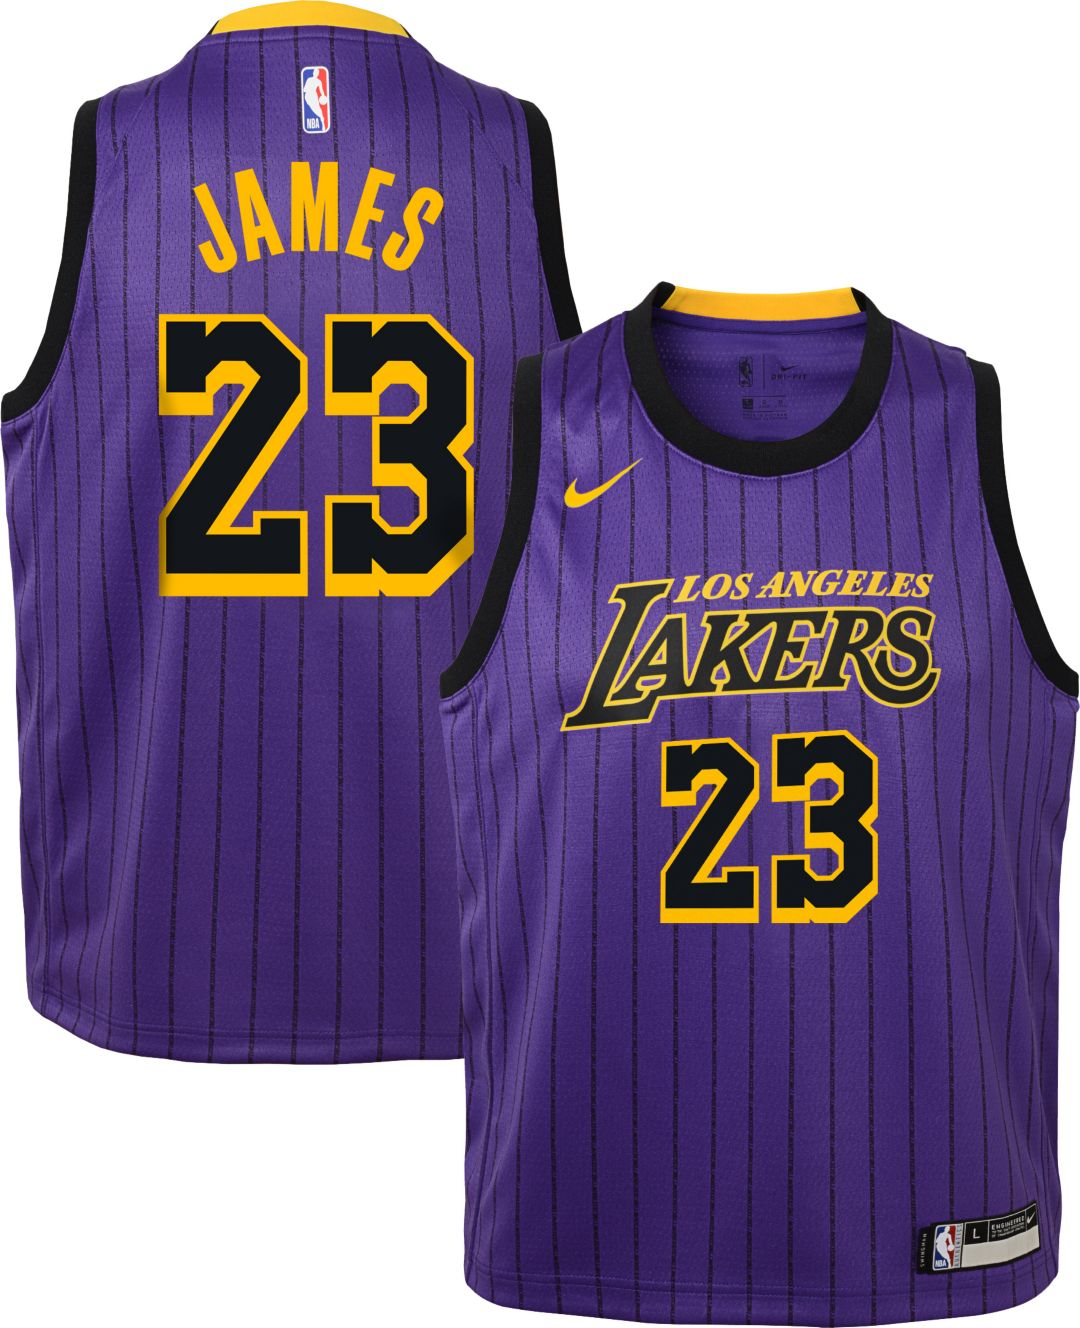 86b3a33842f Nike Youth Los Angeles Lakers LeBron James Dri-FIT Purple City Edition  Swingman Jersey 1